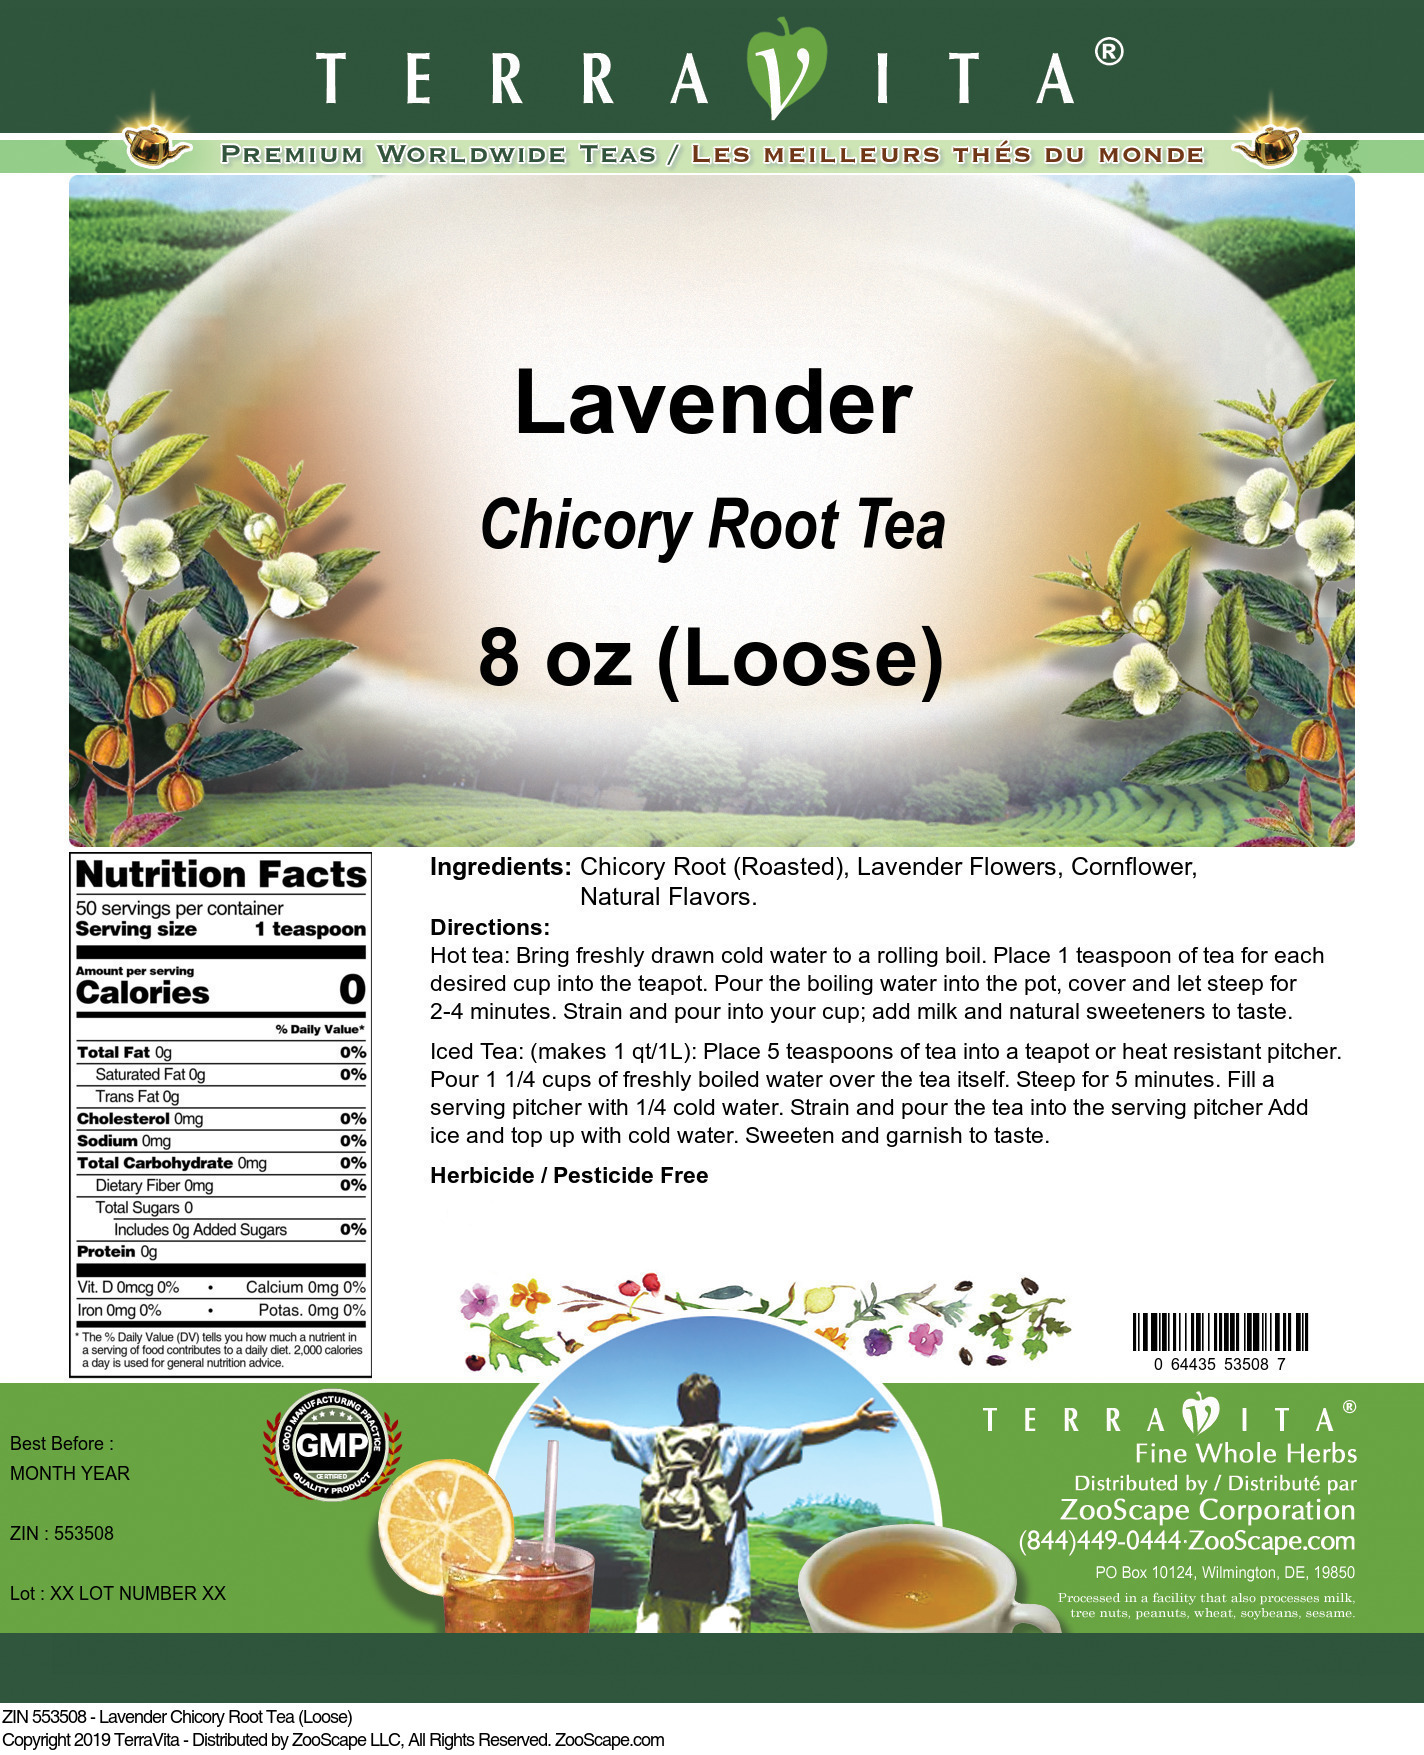 Lavender Chicory Root